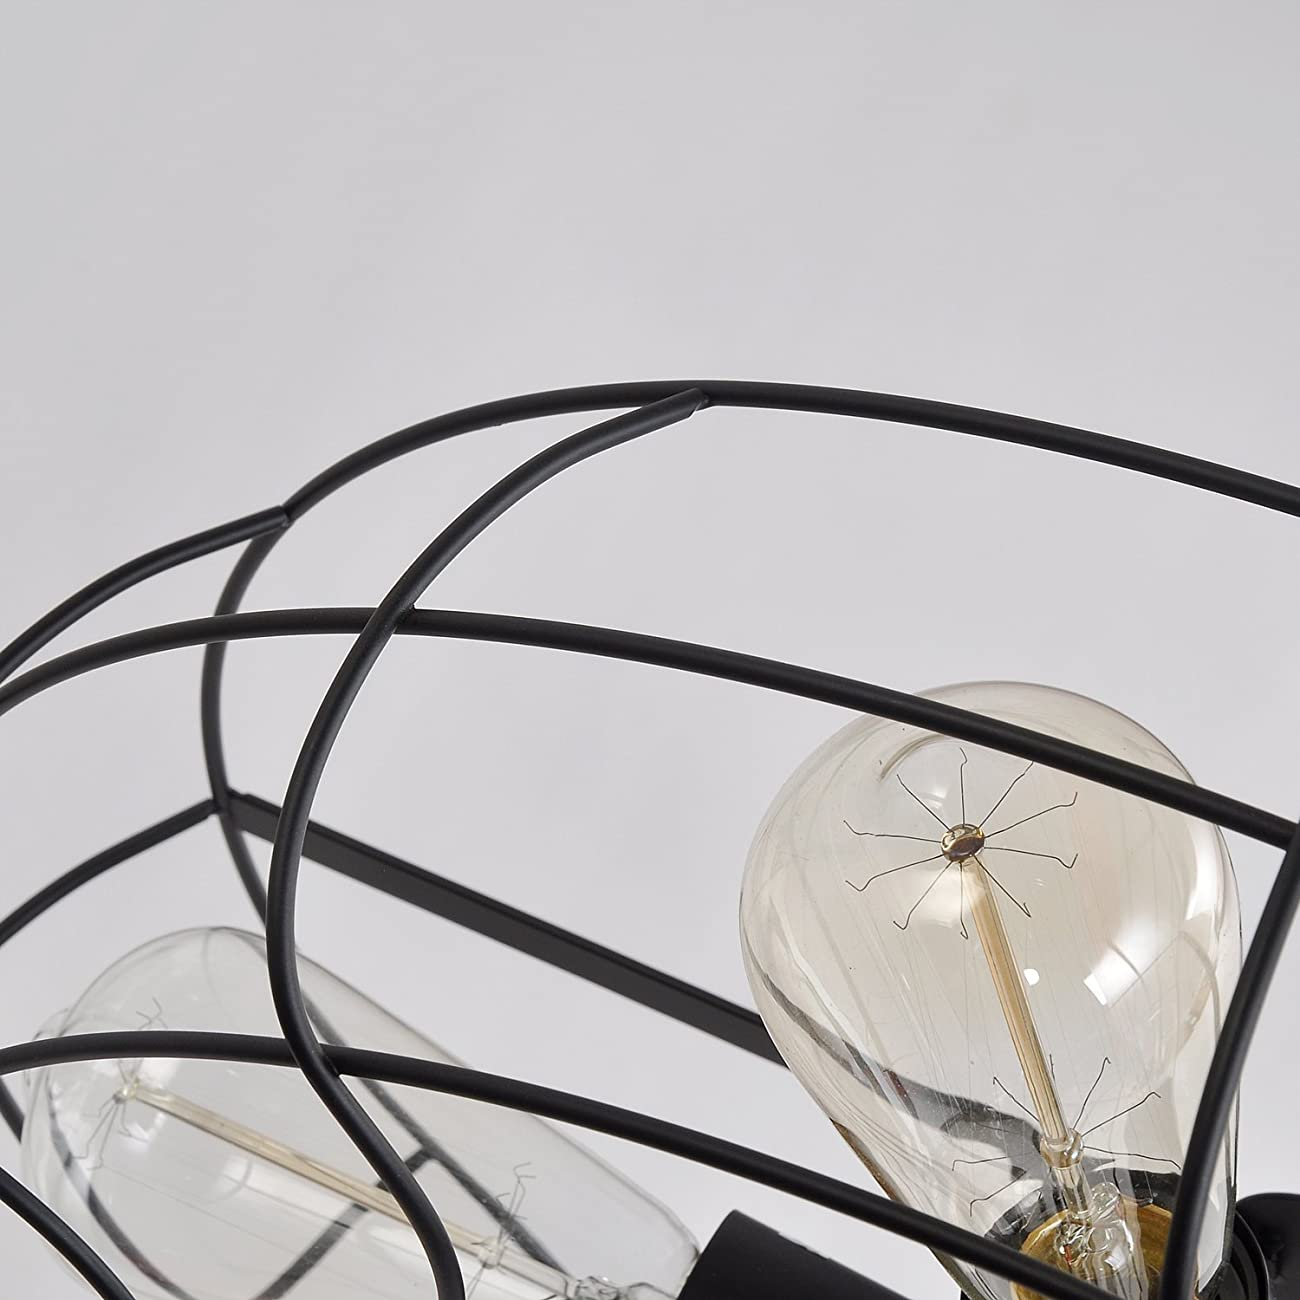 UNITARY BRAND Vintage Barn Metal Hanging Ceiling Chandelier Max. 200W With 5 Lights Painted Finish 4